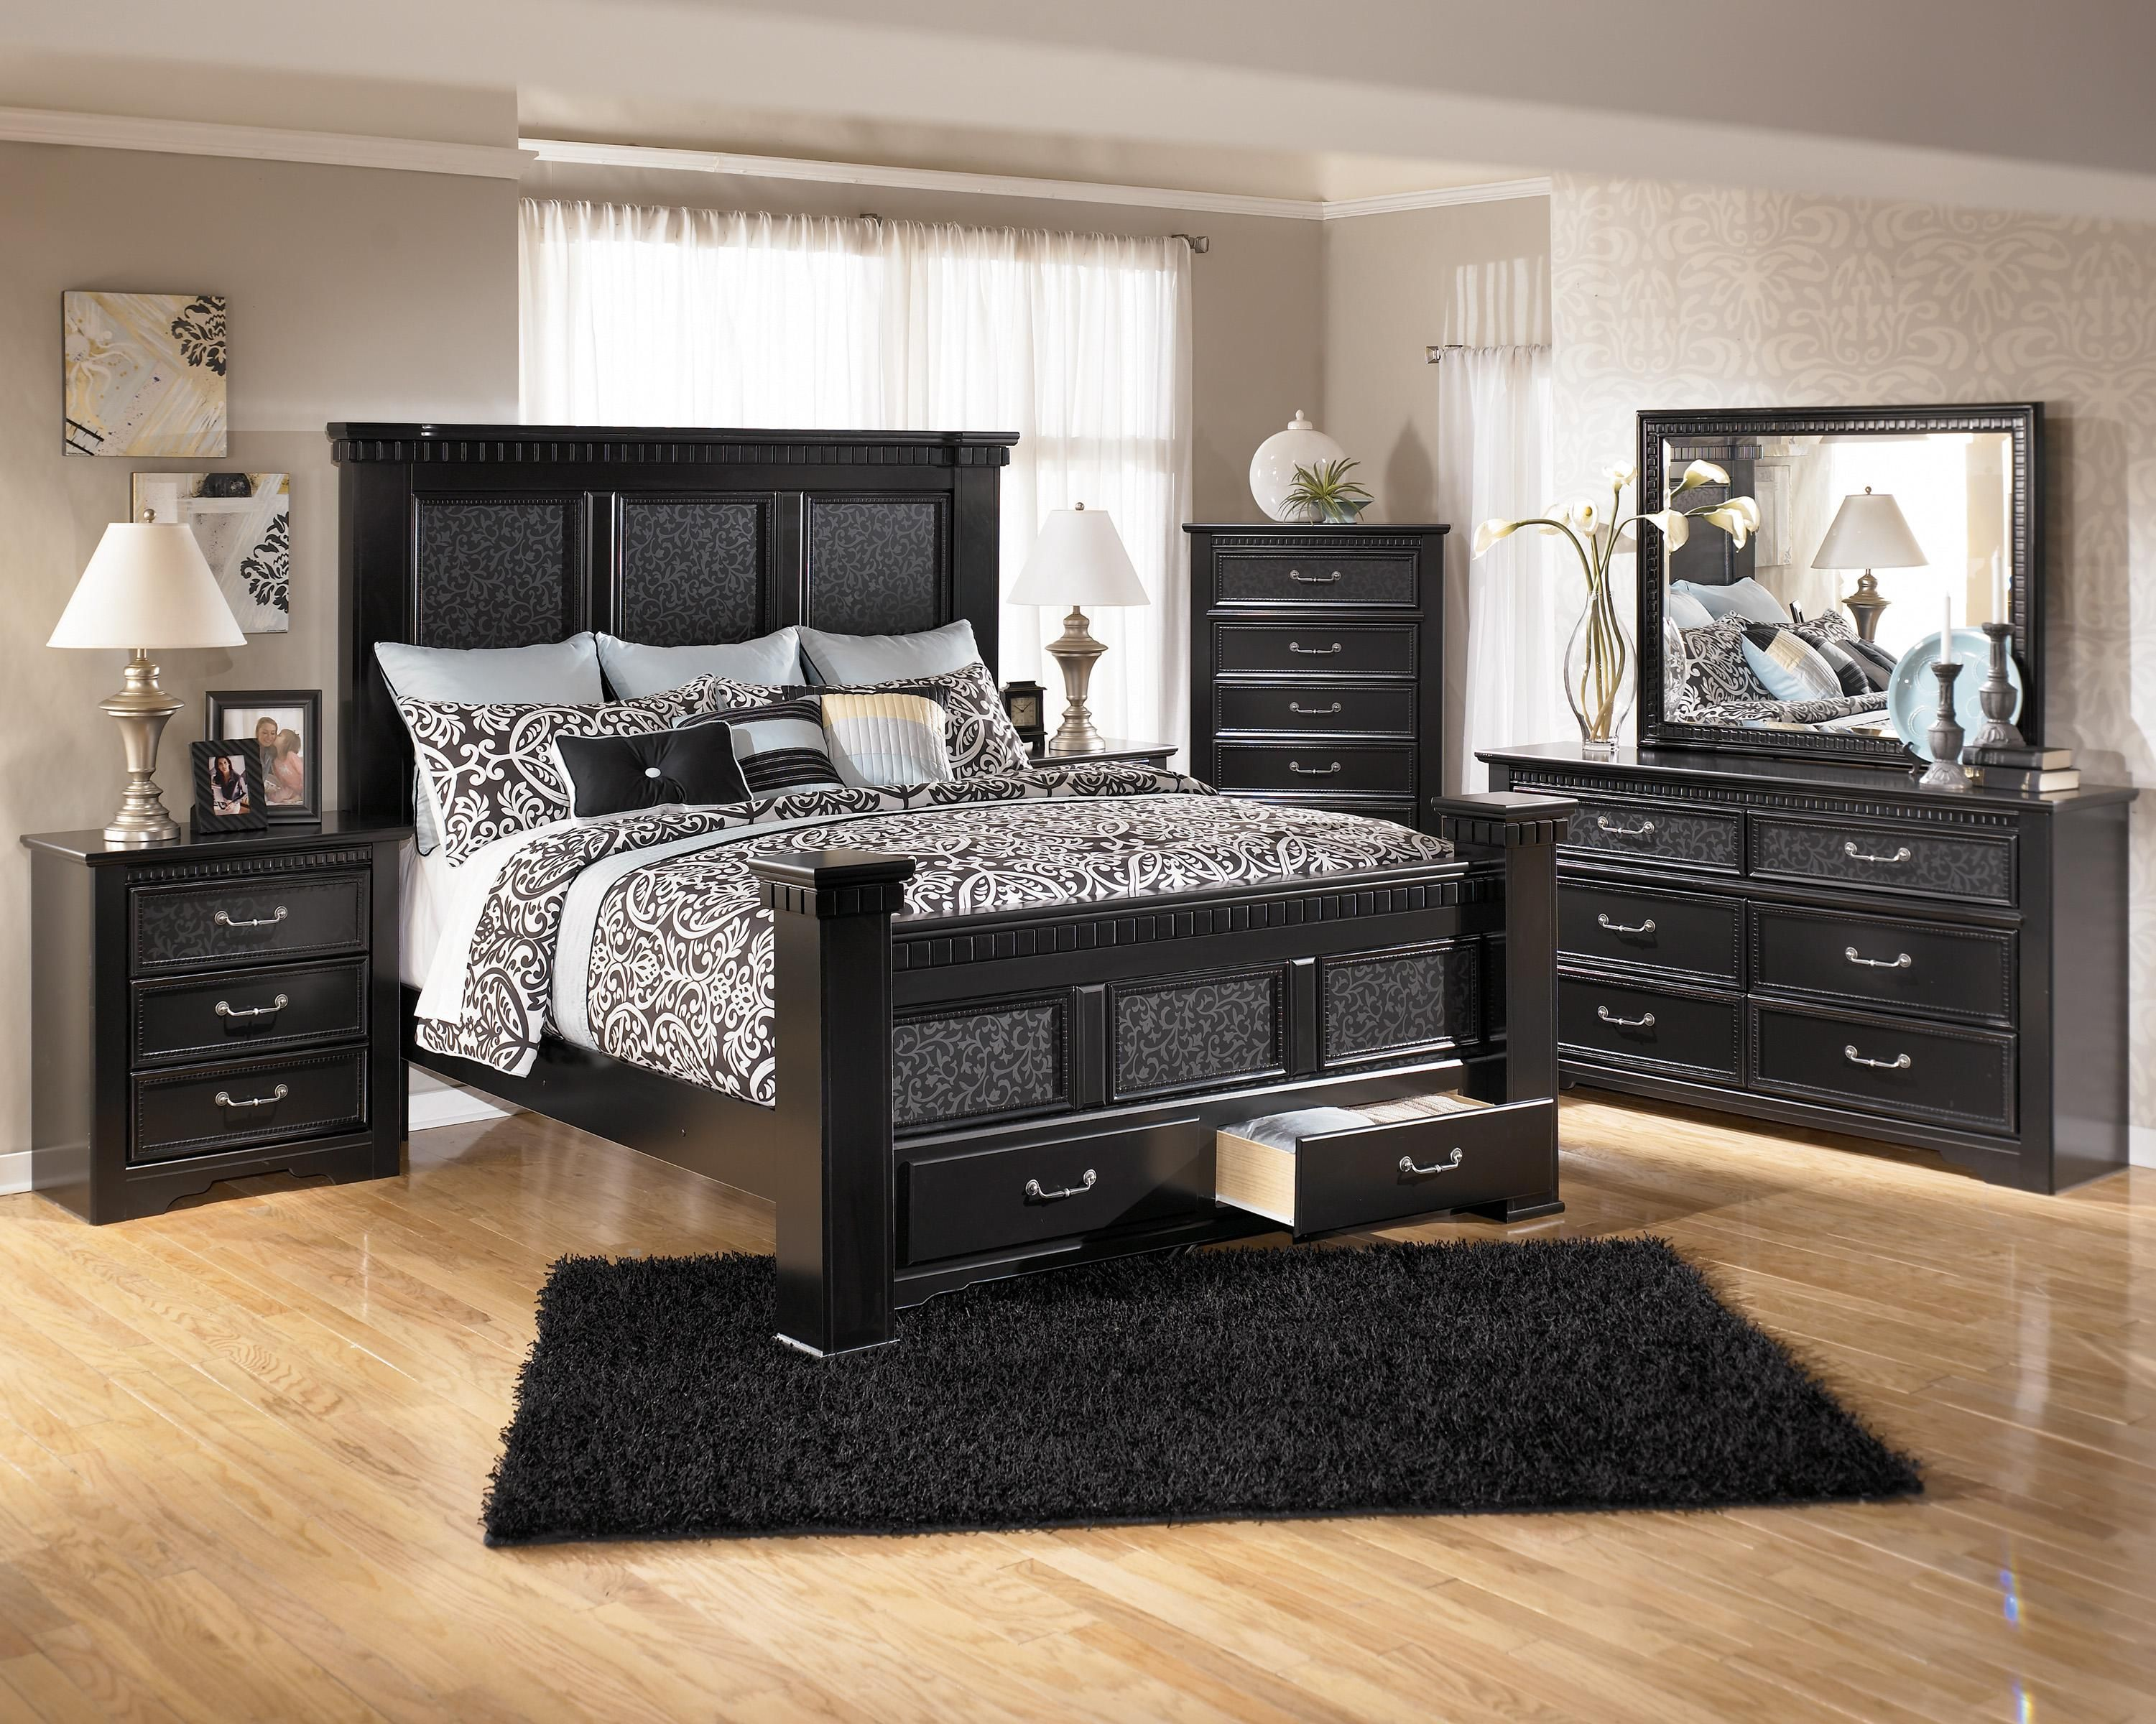 Ashley furniture cavallino bedroom set with mansion poster - Ashley furniture bedroom packages ...